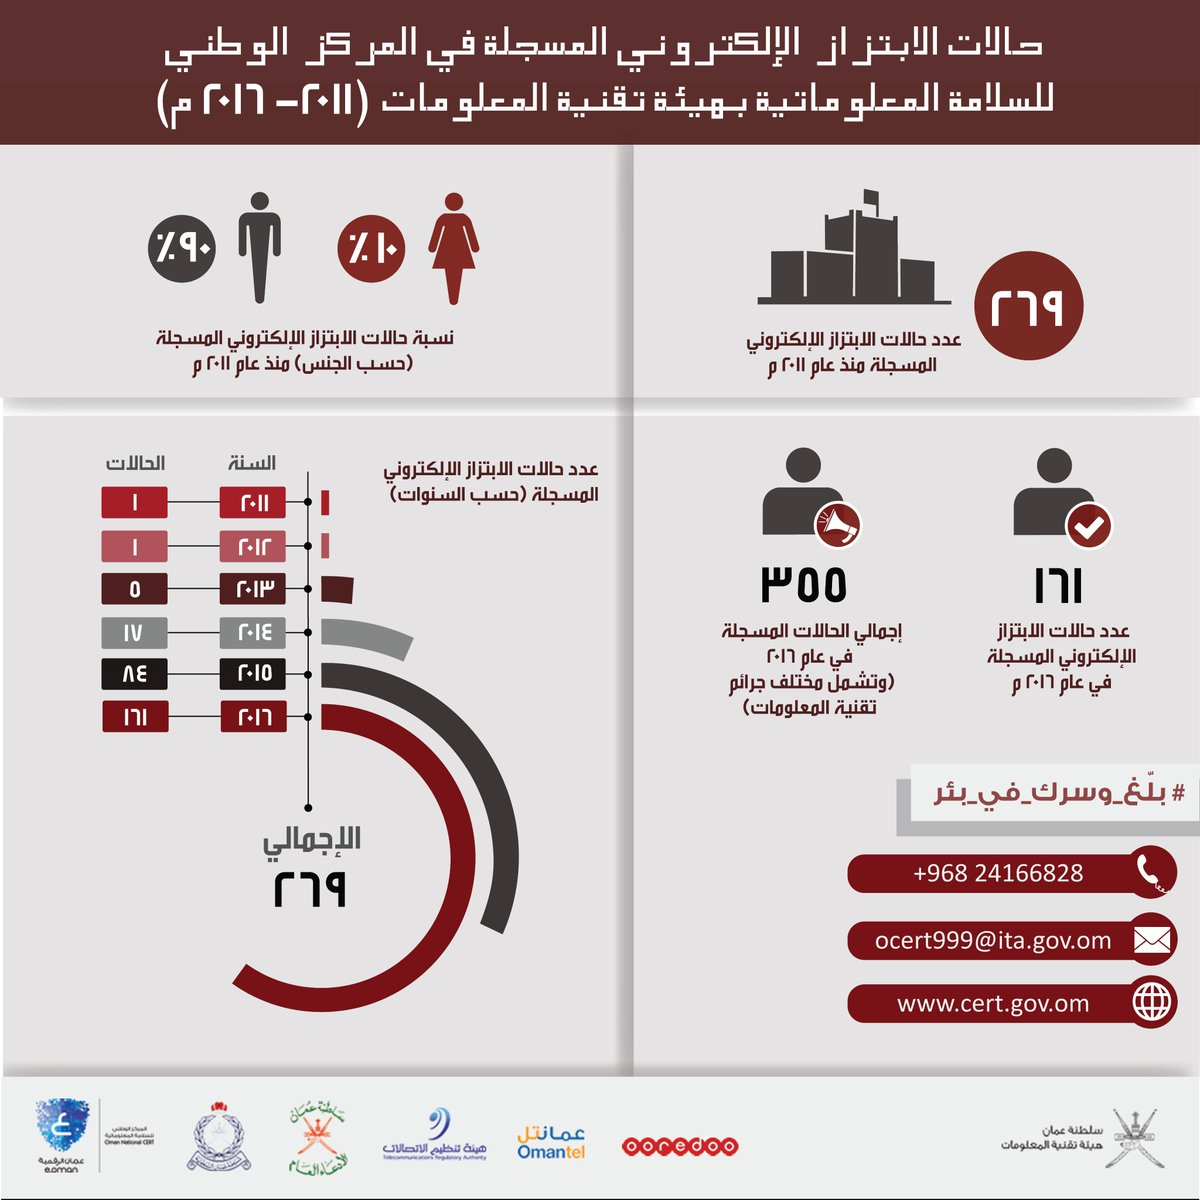 Cyber Blackmail Infographic - Oman (Arabic)